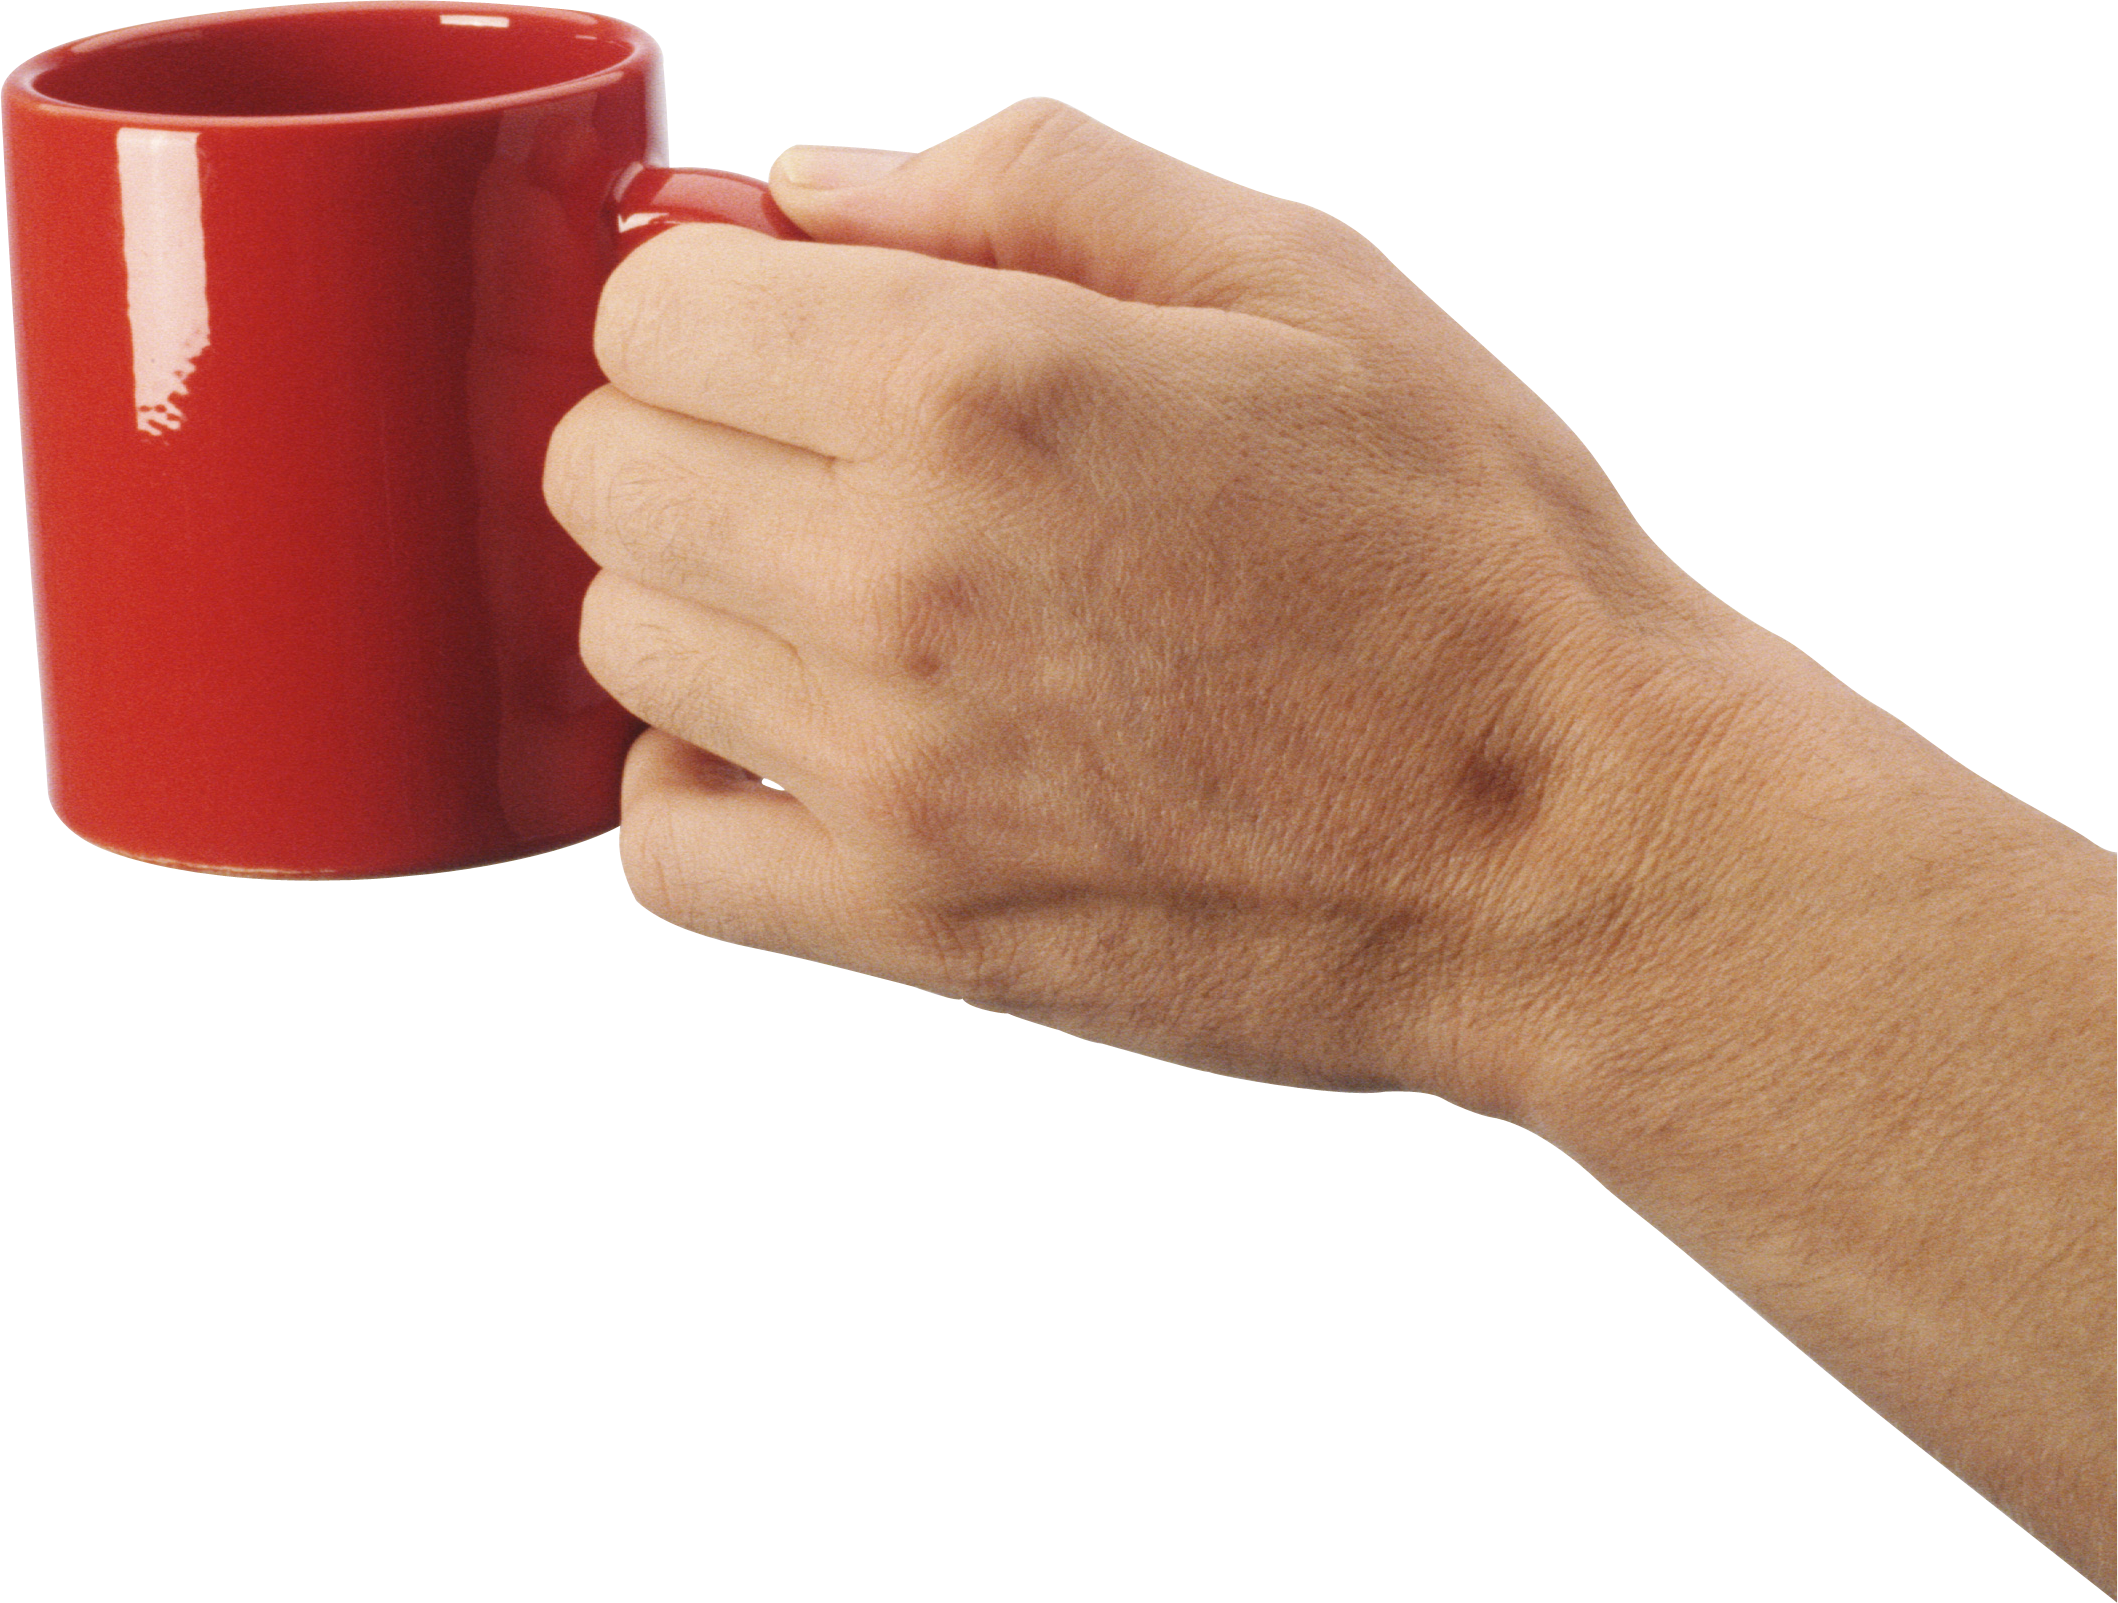 red glass with hands png